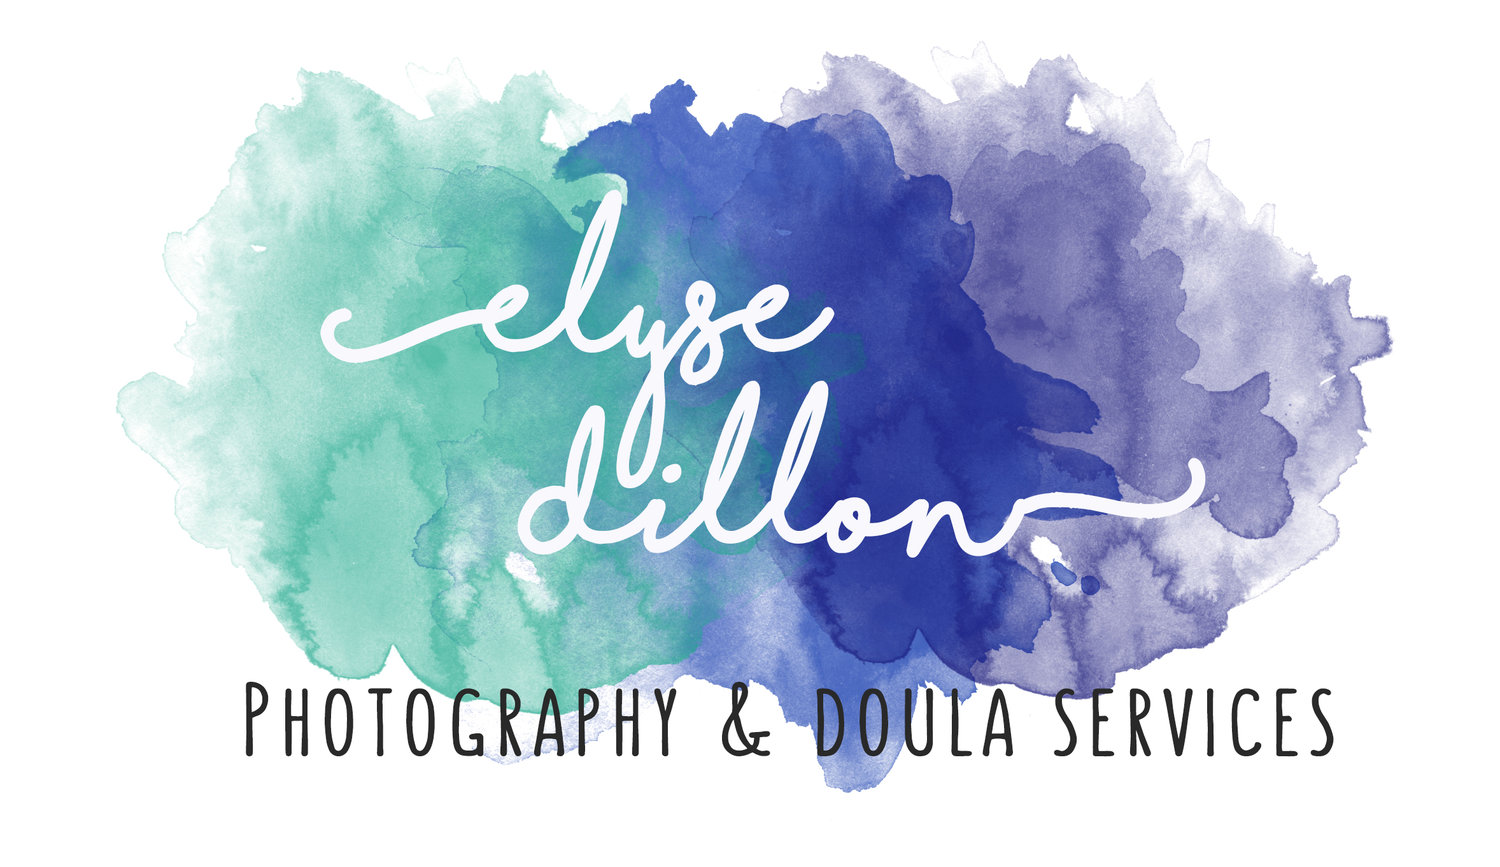 Elyse Dillon: Birth & Doula Services